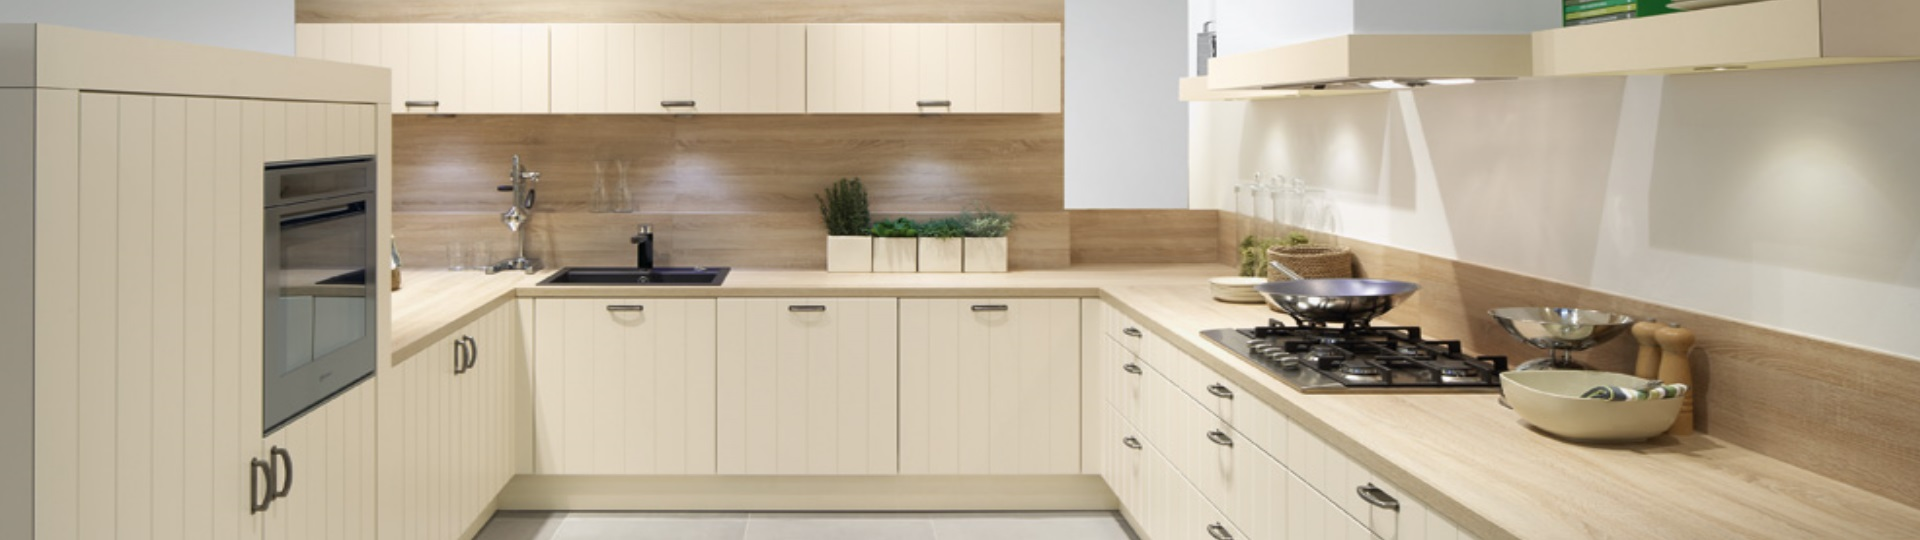 Kitchen Installation Bristol, Bristol Kithen Installers